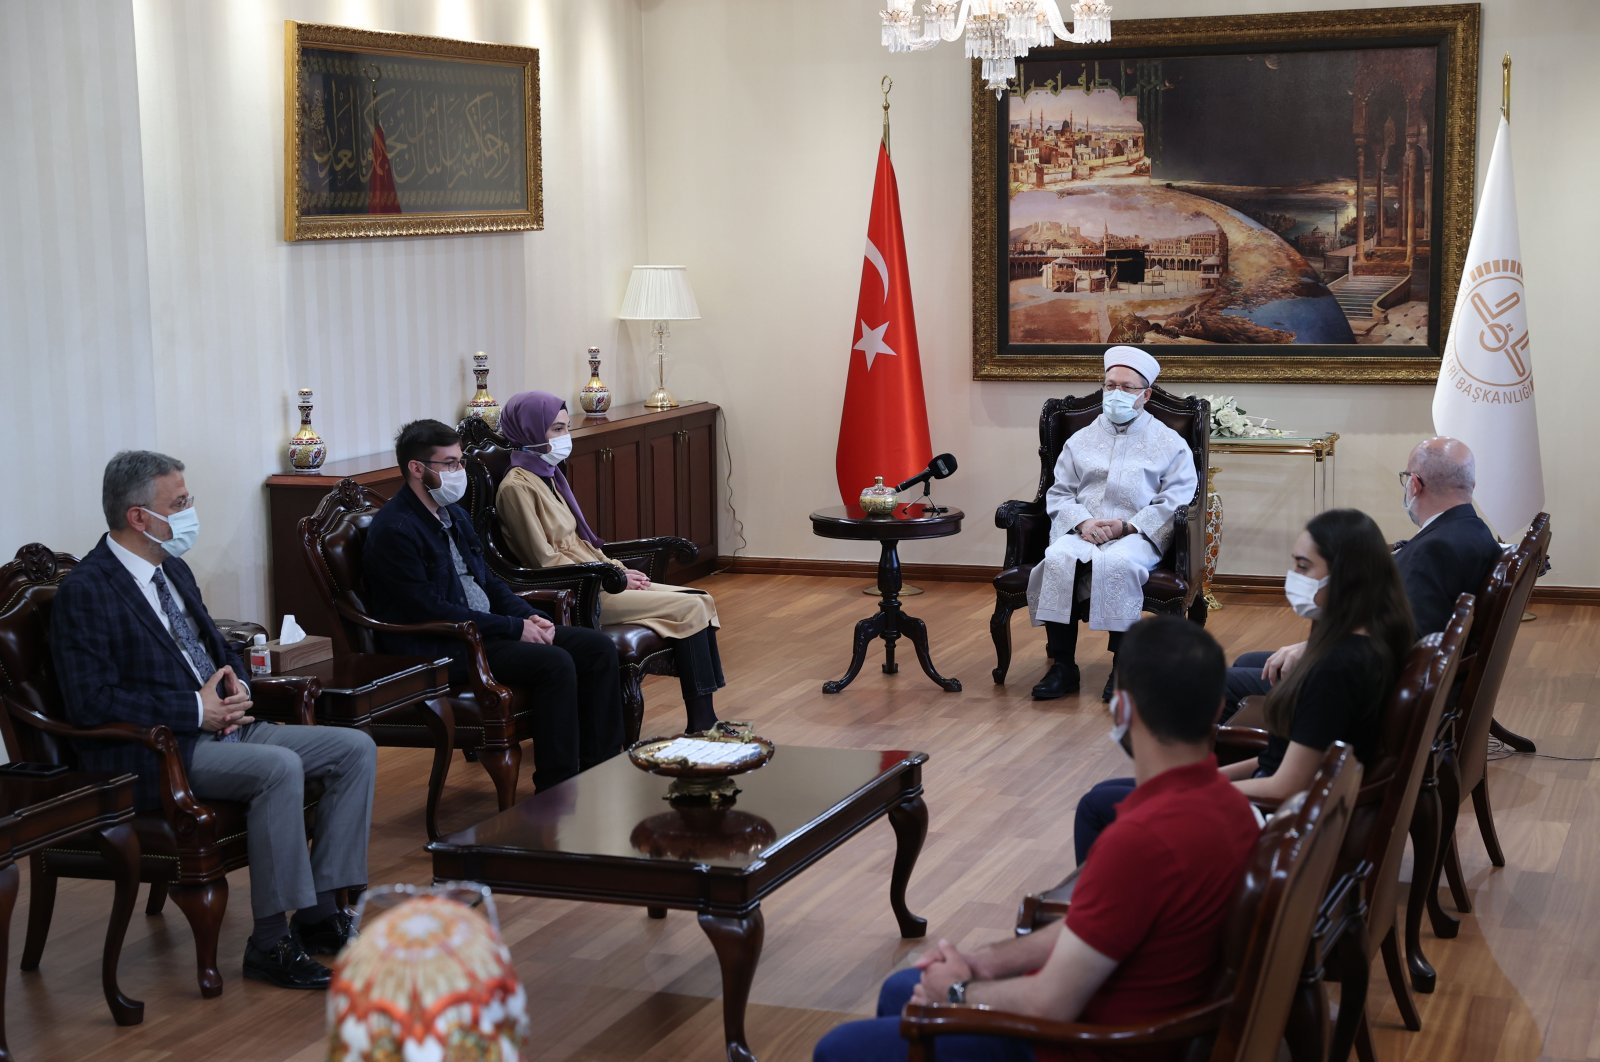 The head of Turkey's Presidency of Religious Affairs (Diyanet) Ali Erbaş (center) speaks to youth in a meeting in Ankara, May 21, 2021. (AA Photo)